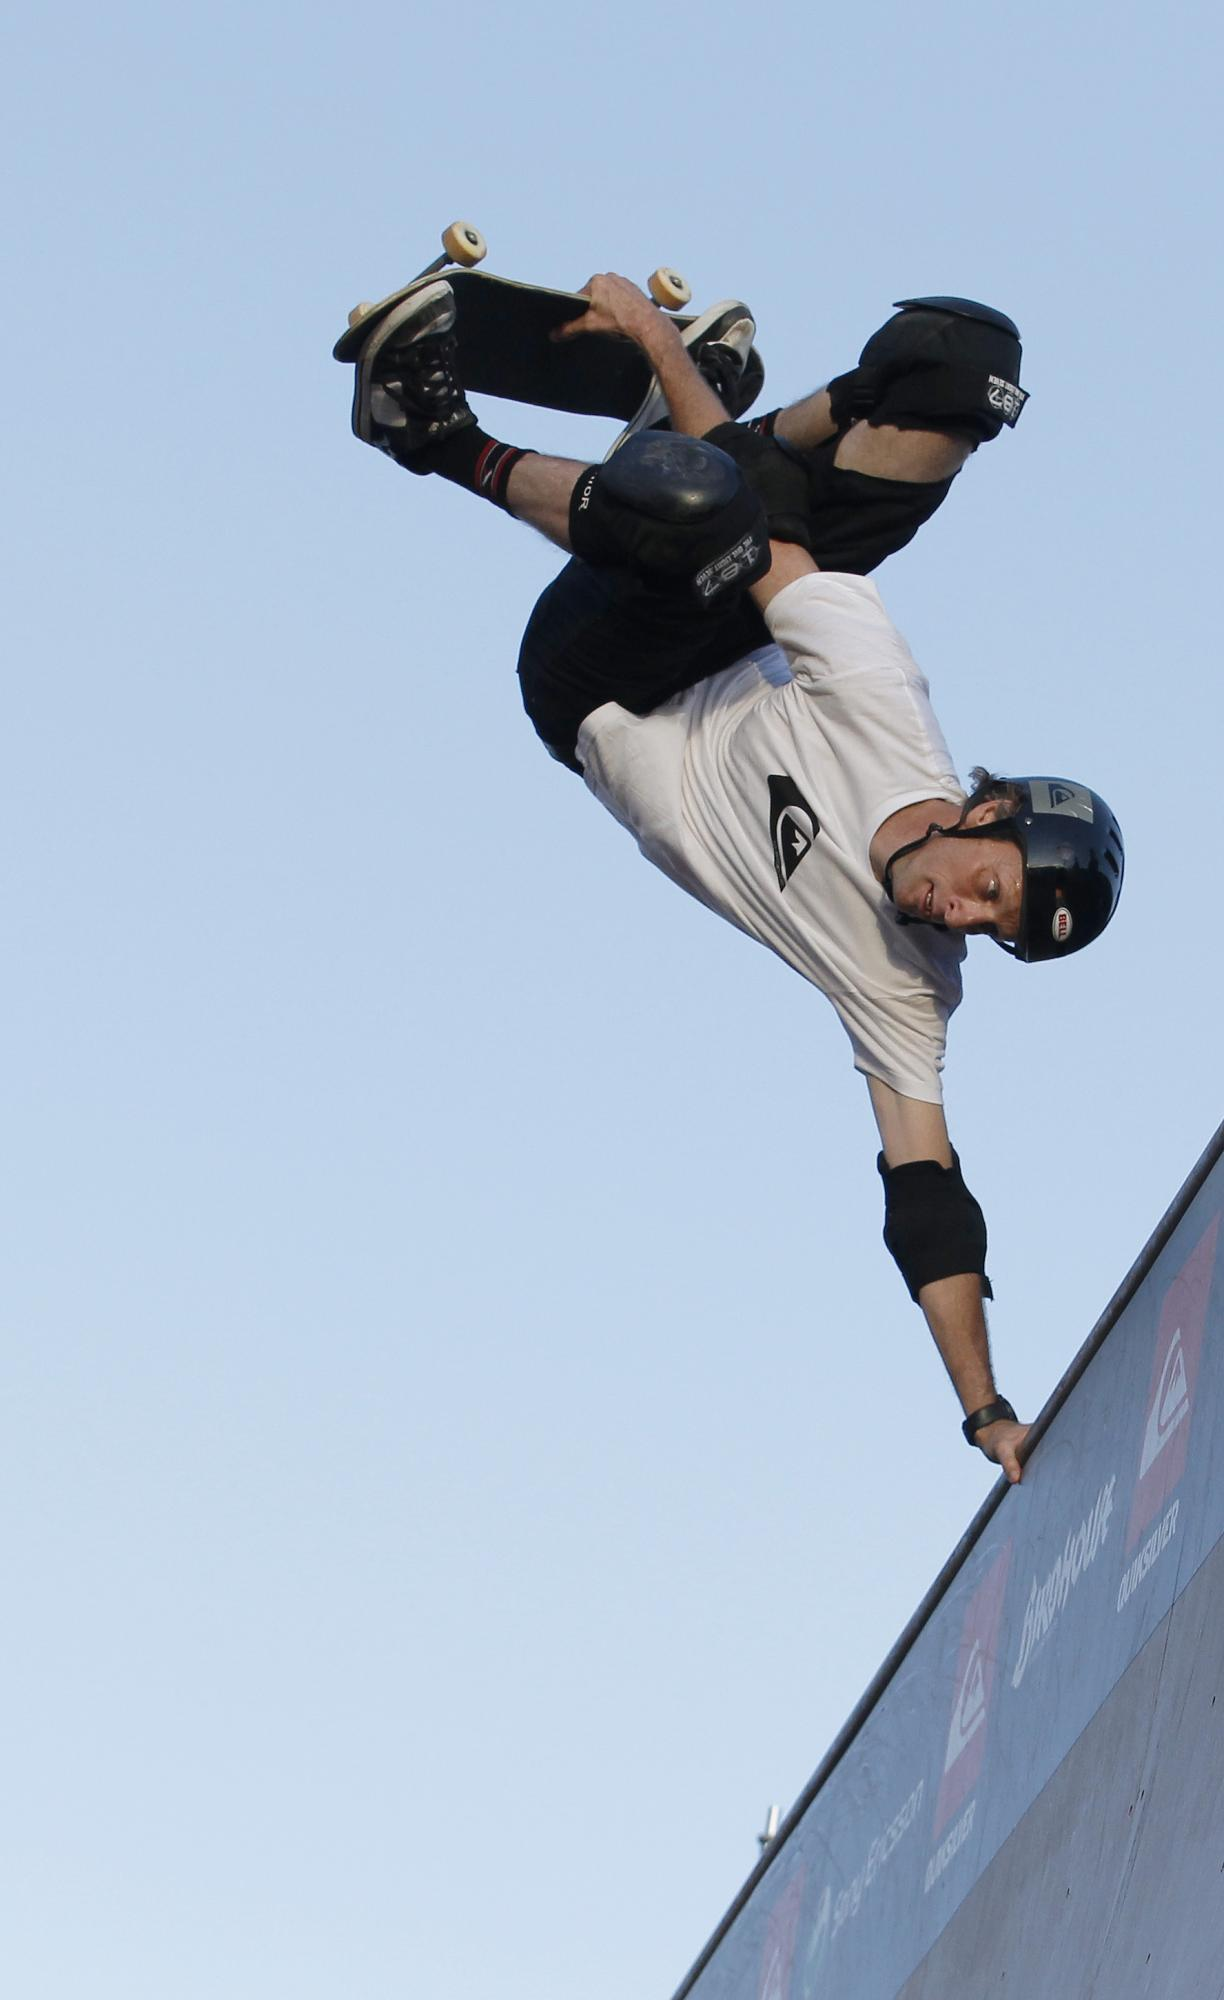 the life and career of tony hawk Tony hawk talks about a defining moment in his career in new of a game or the life of your favorite athlete's career from tony hawk's 900 to sean.